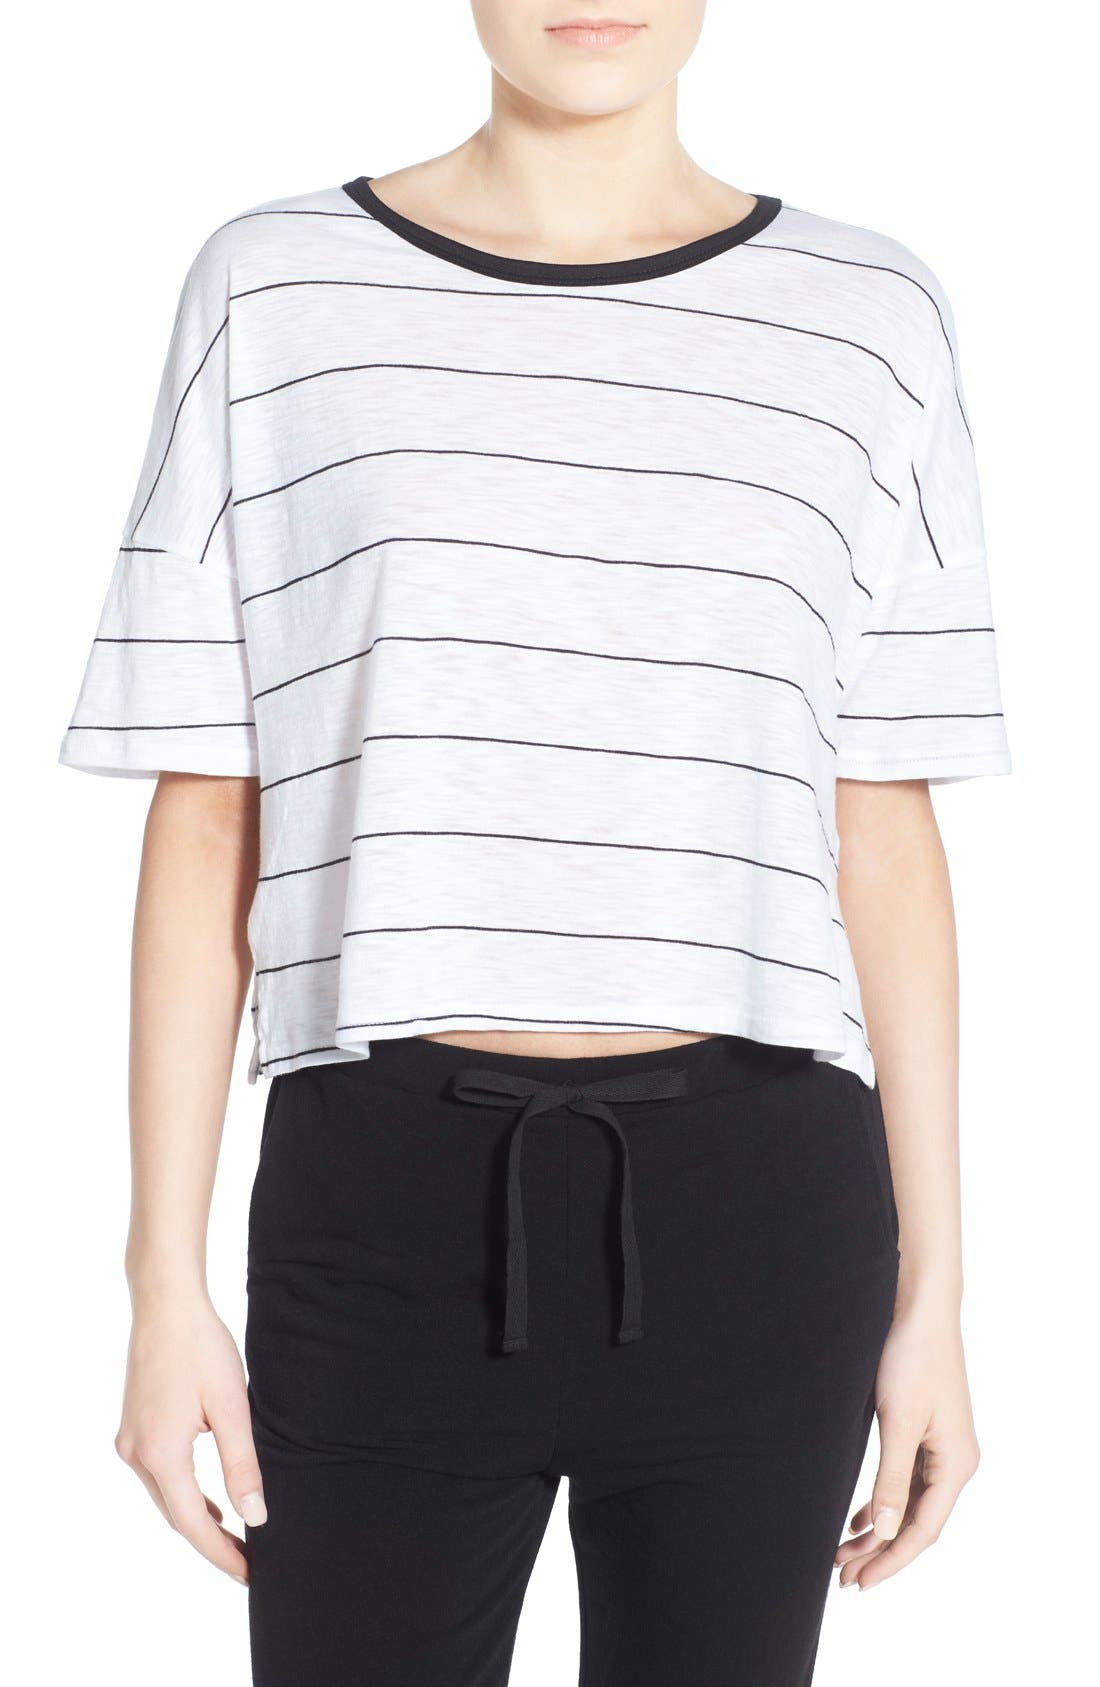 Alternate Image 1 Selected - Michelle by Comune Stripe Crop Tee